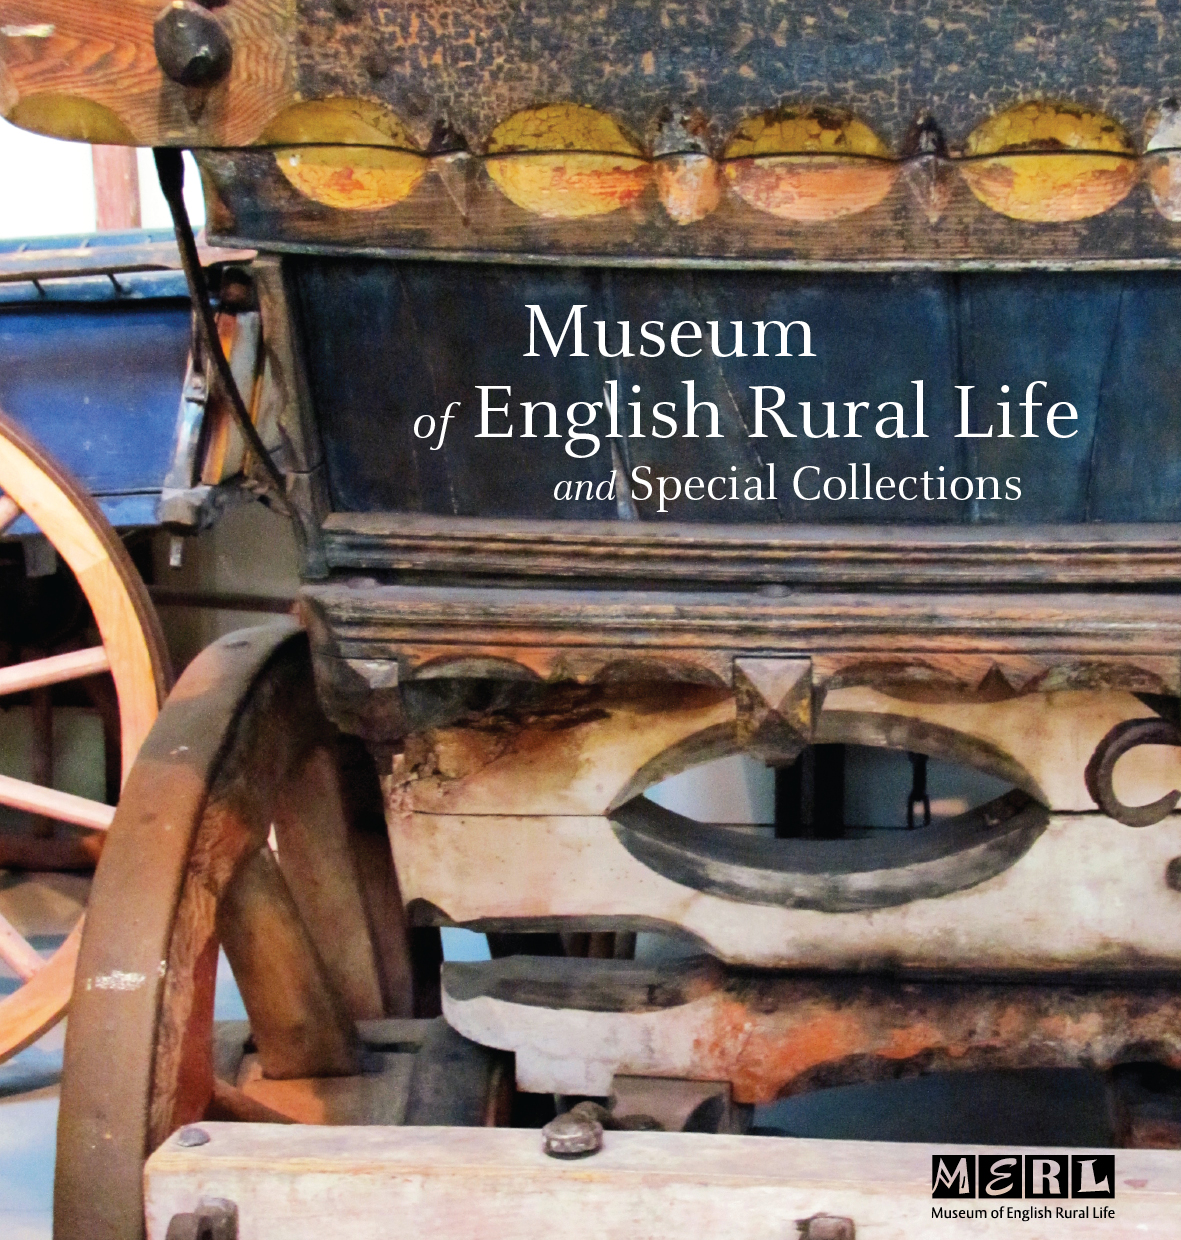 Museum of English Rural Life